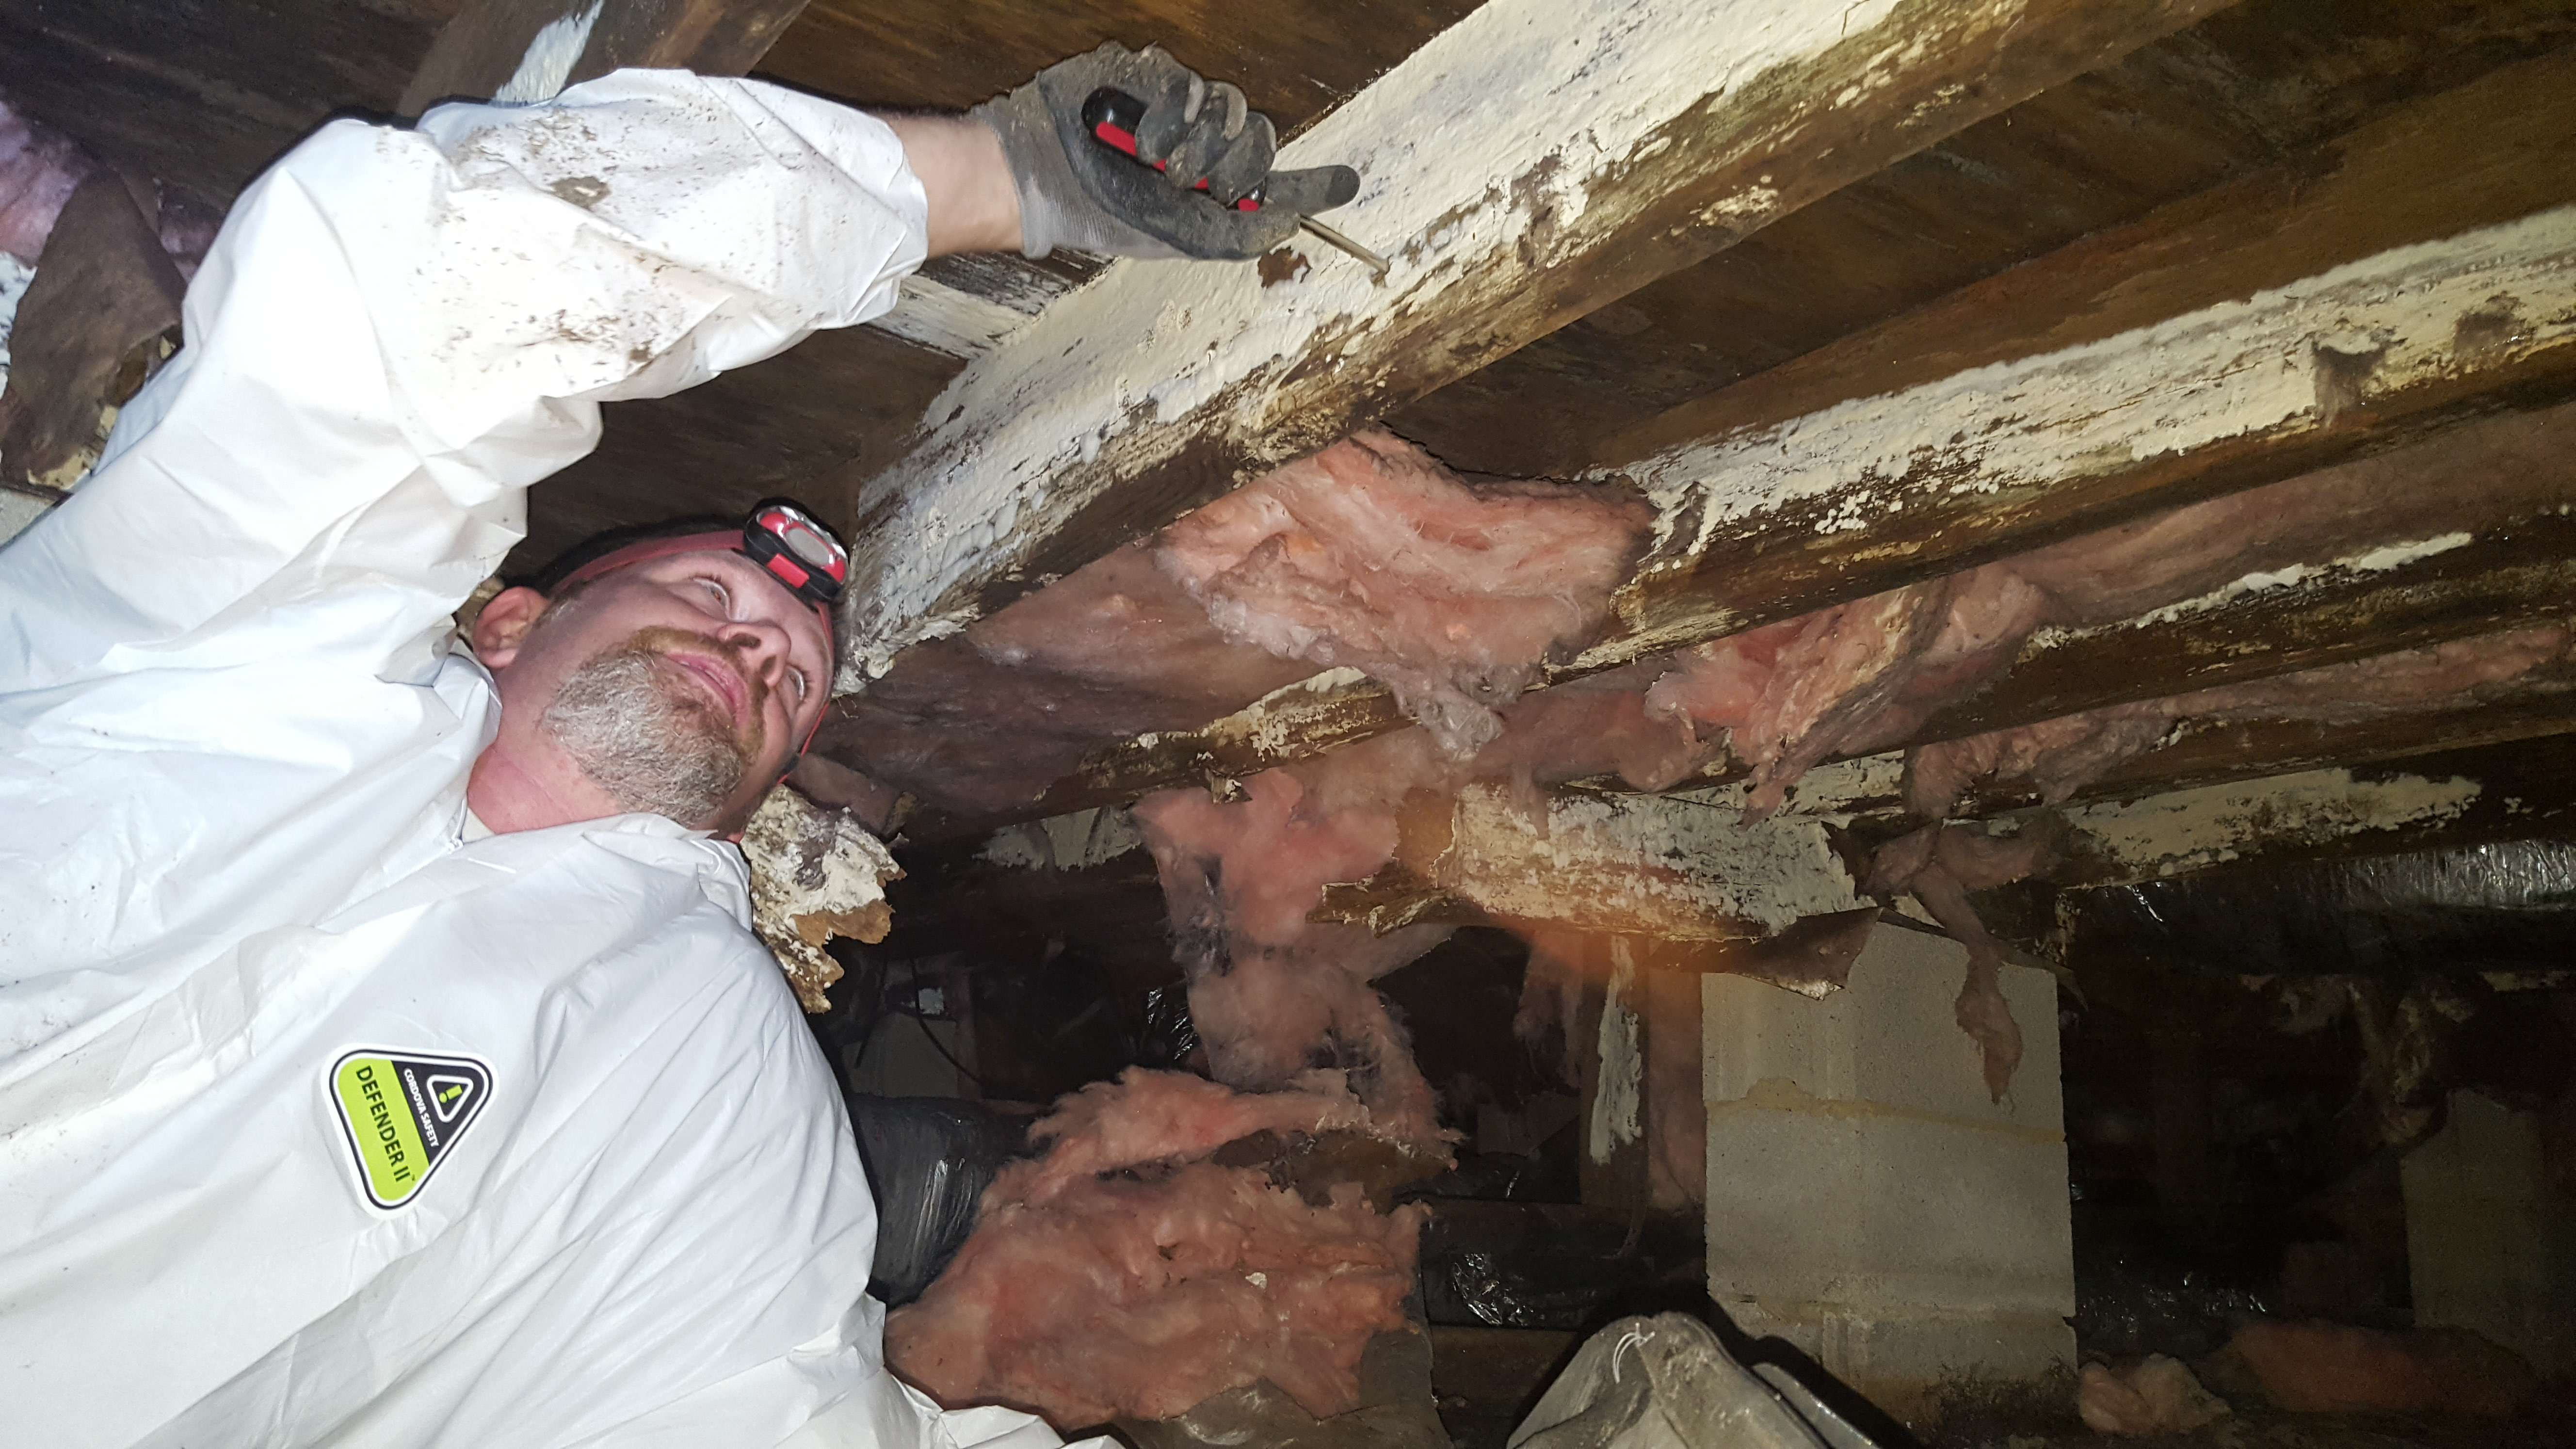 Bay crawlspace and foundation repair in virginia beach va for American crawlspace reviews